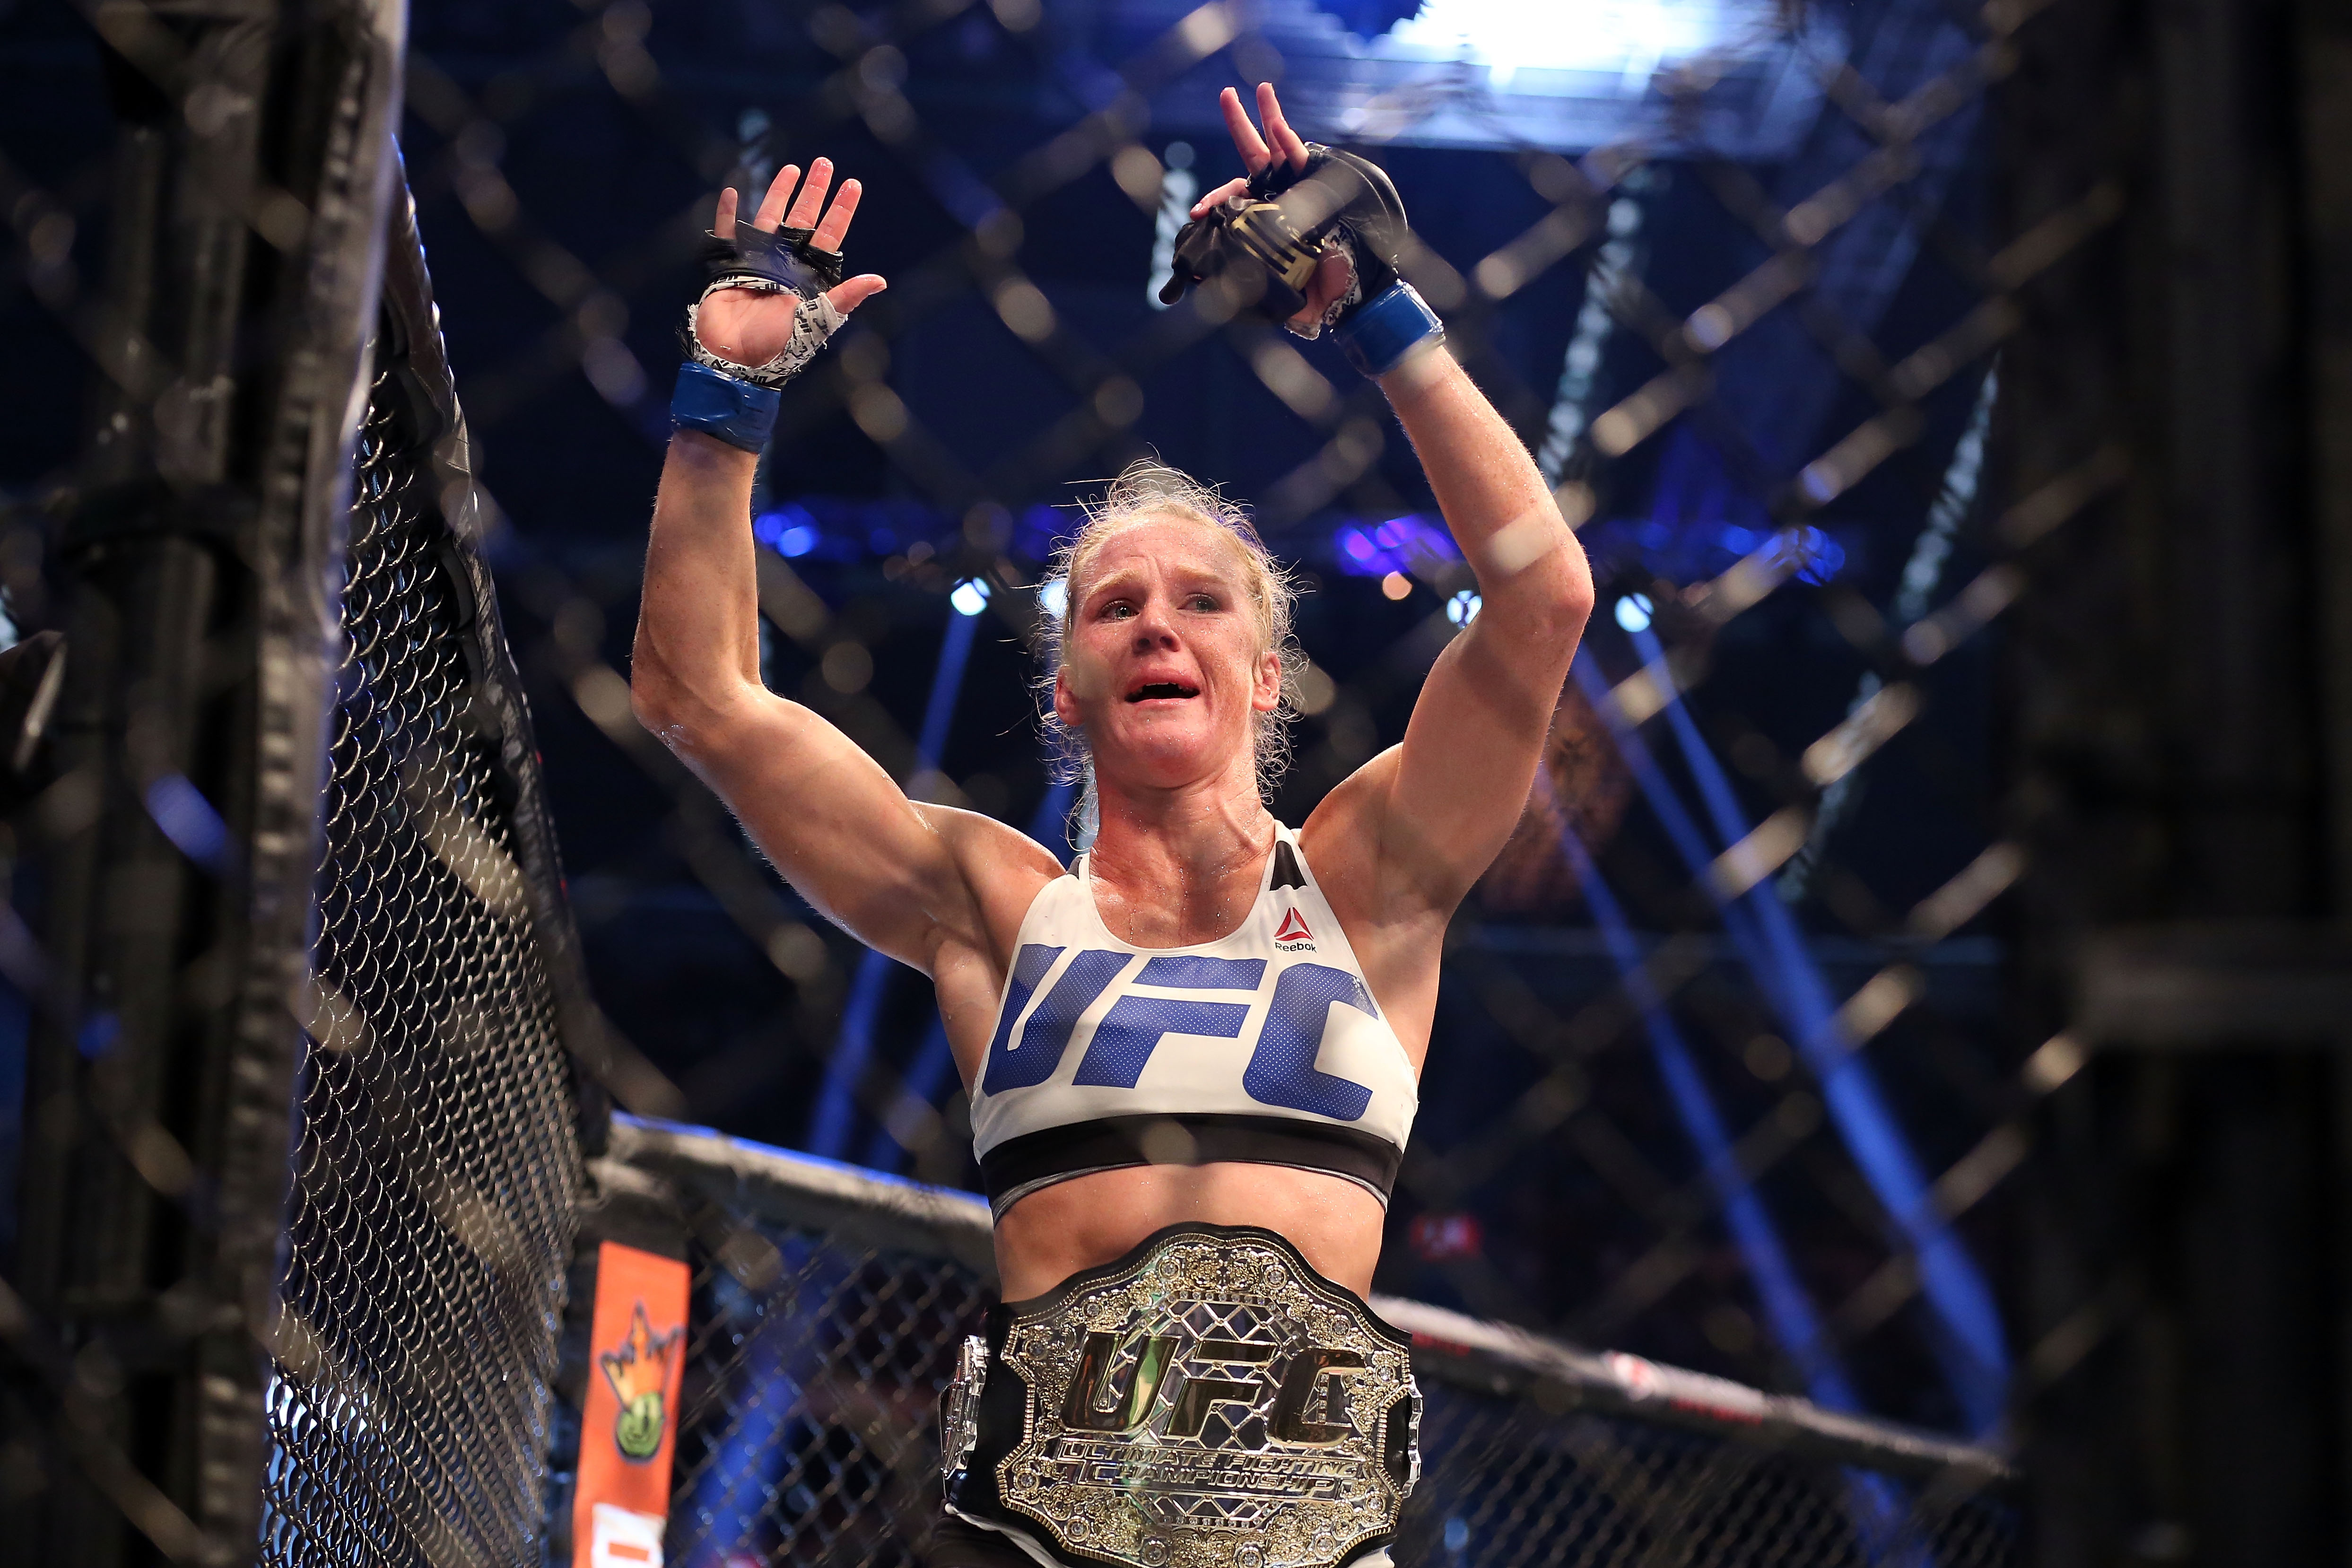 UFC 243: Holly Holm to fight Raquel Pennington at the same venue she knocked out Ronda Rousey